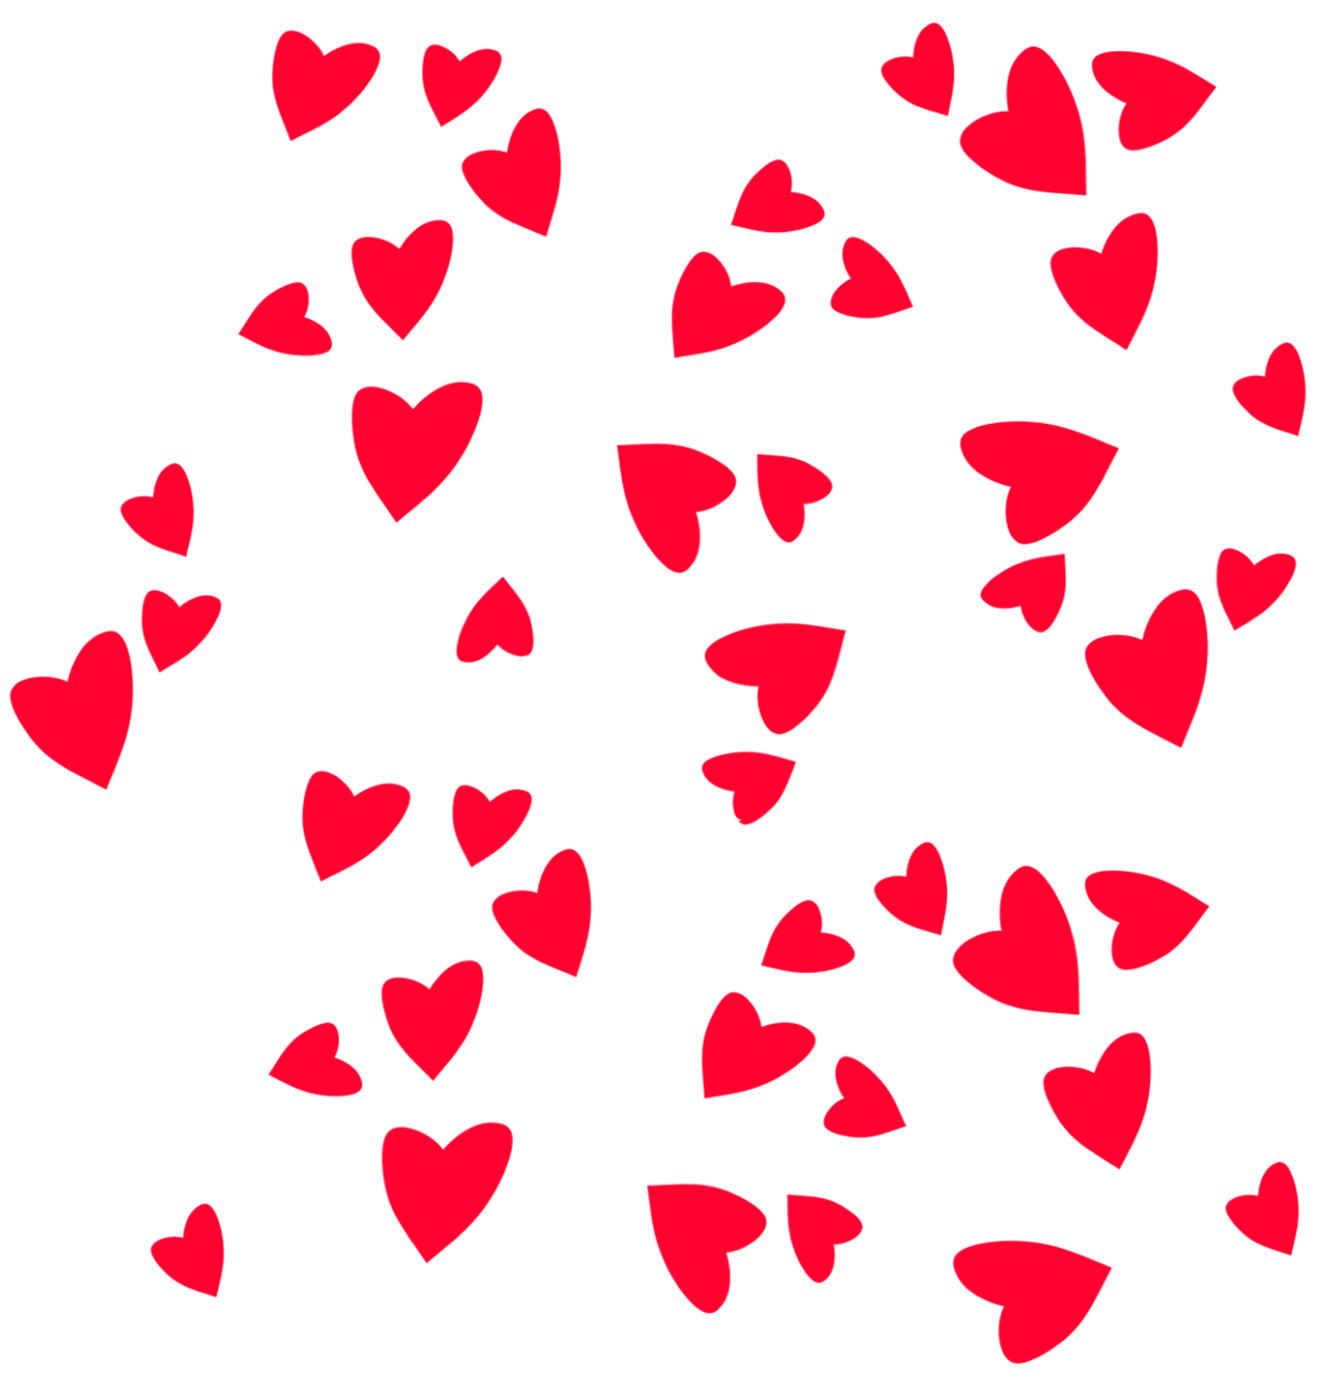 Happy day png transparentpng. Valentines .png picture